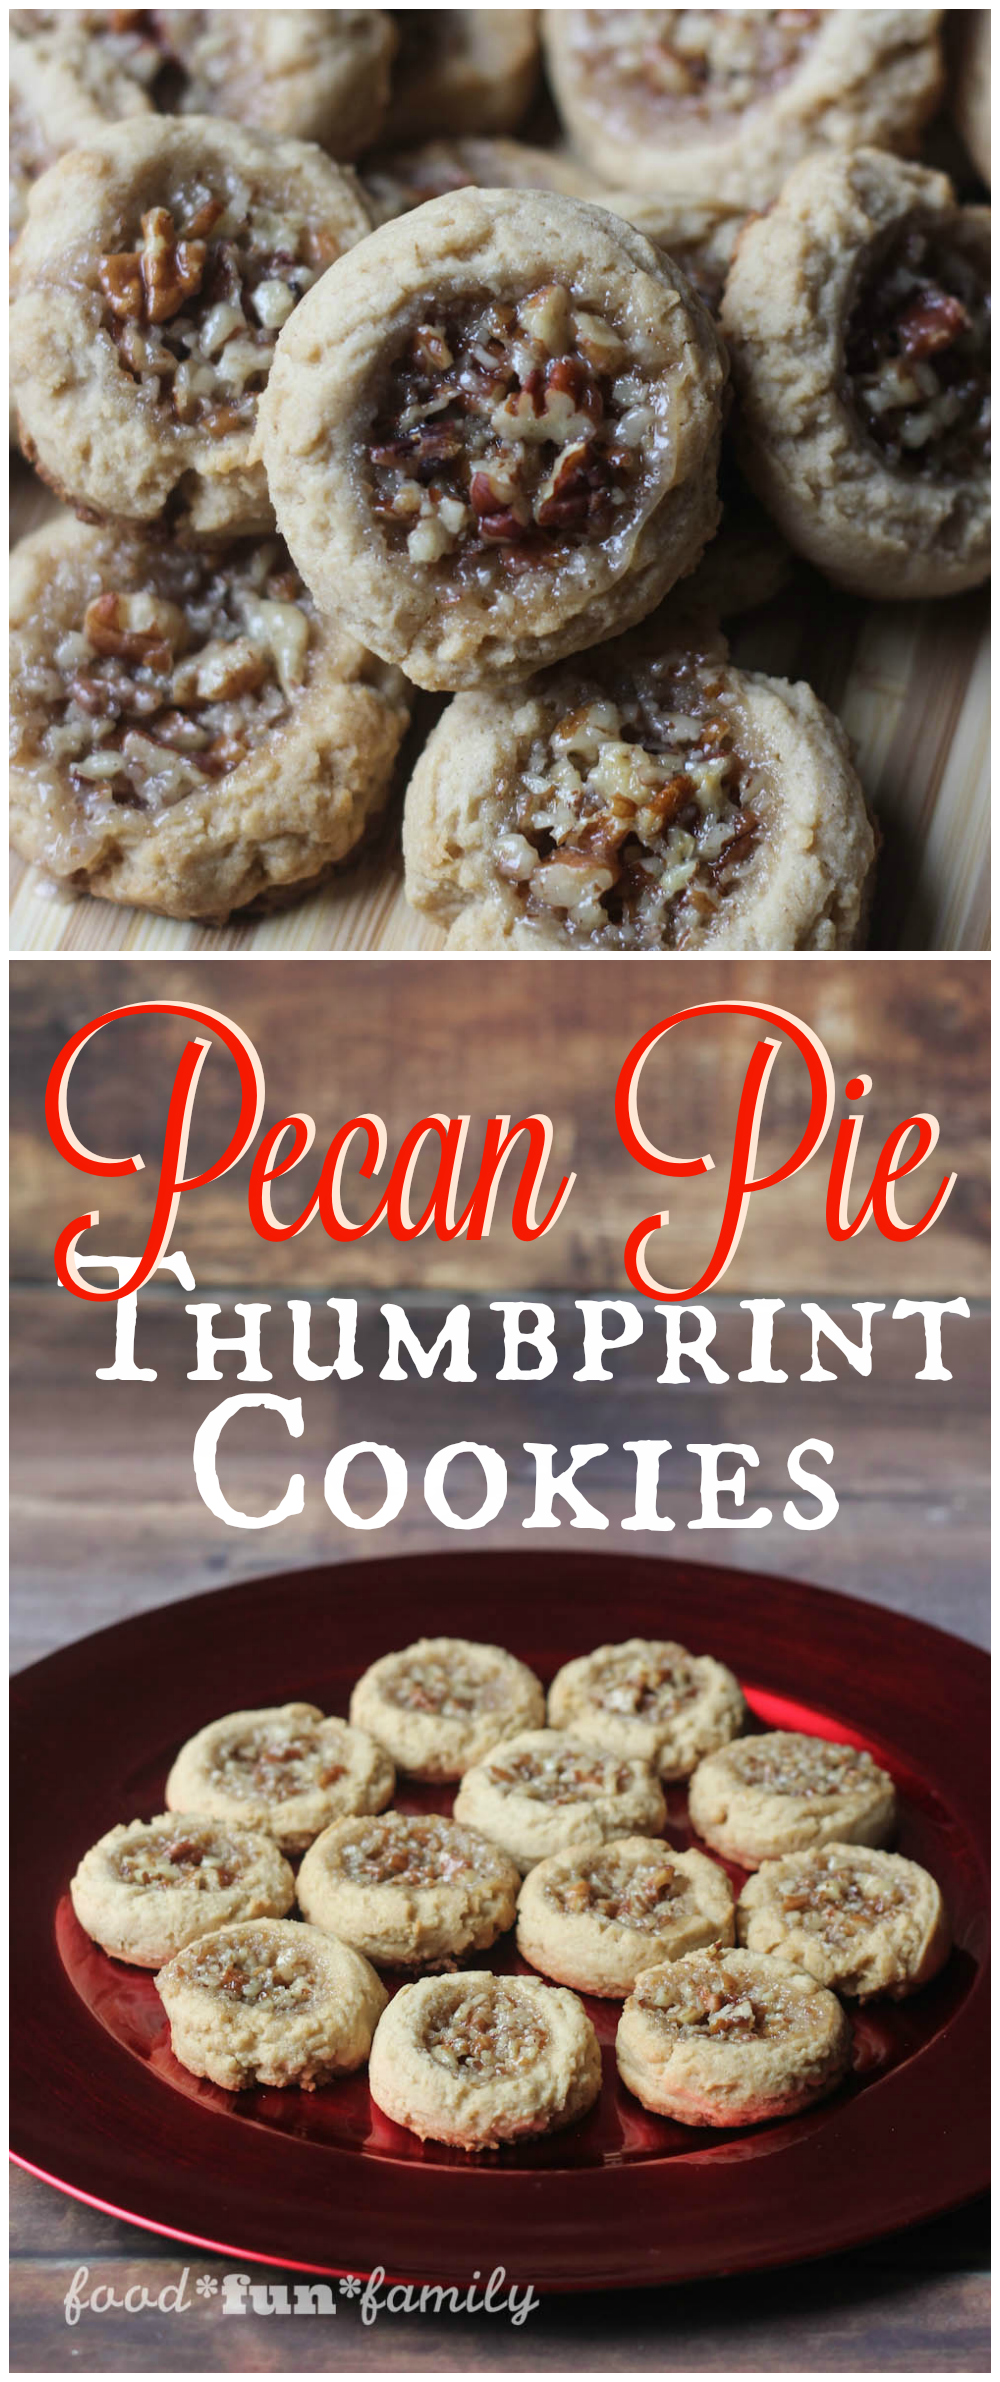 Pecan Pie Thumbprint Cookies Recipe from Food Fun Family